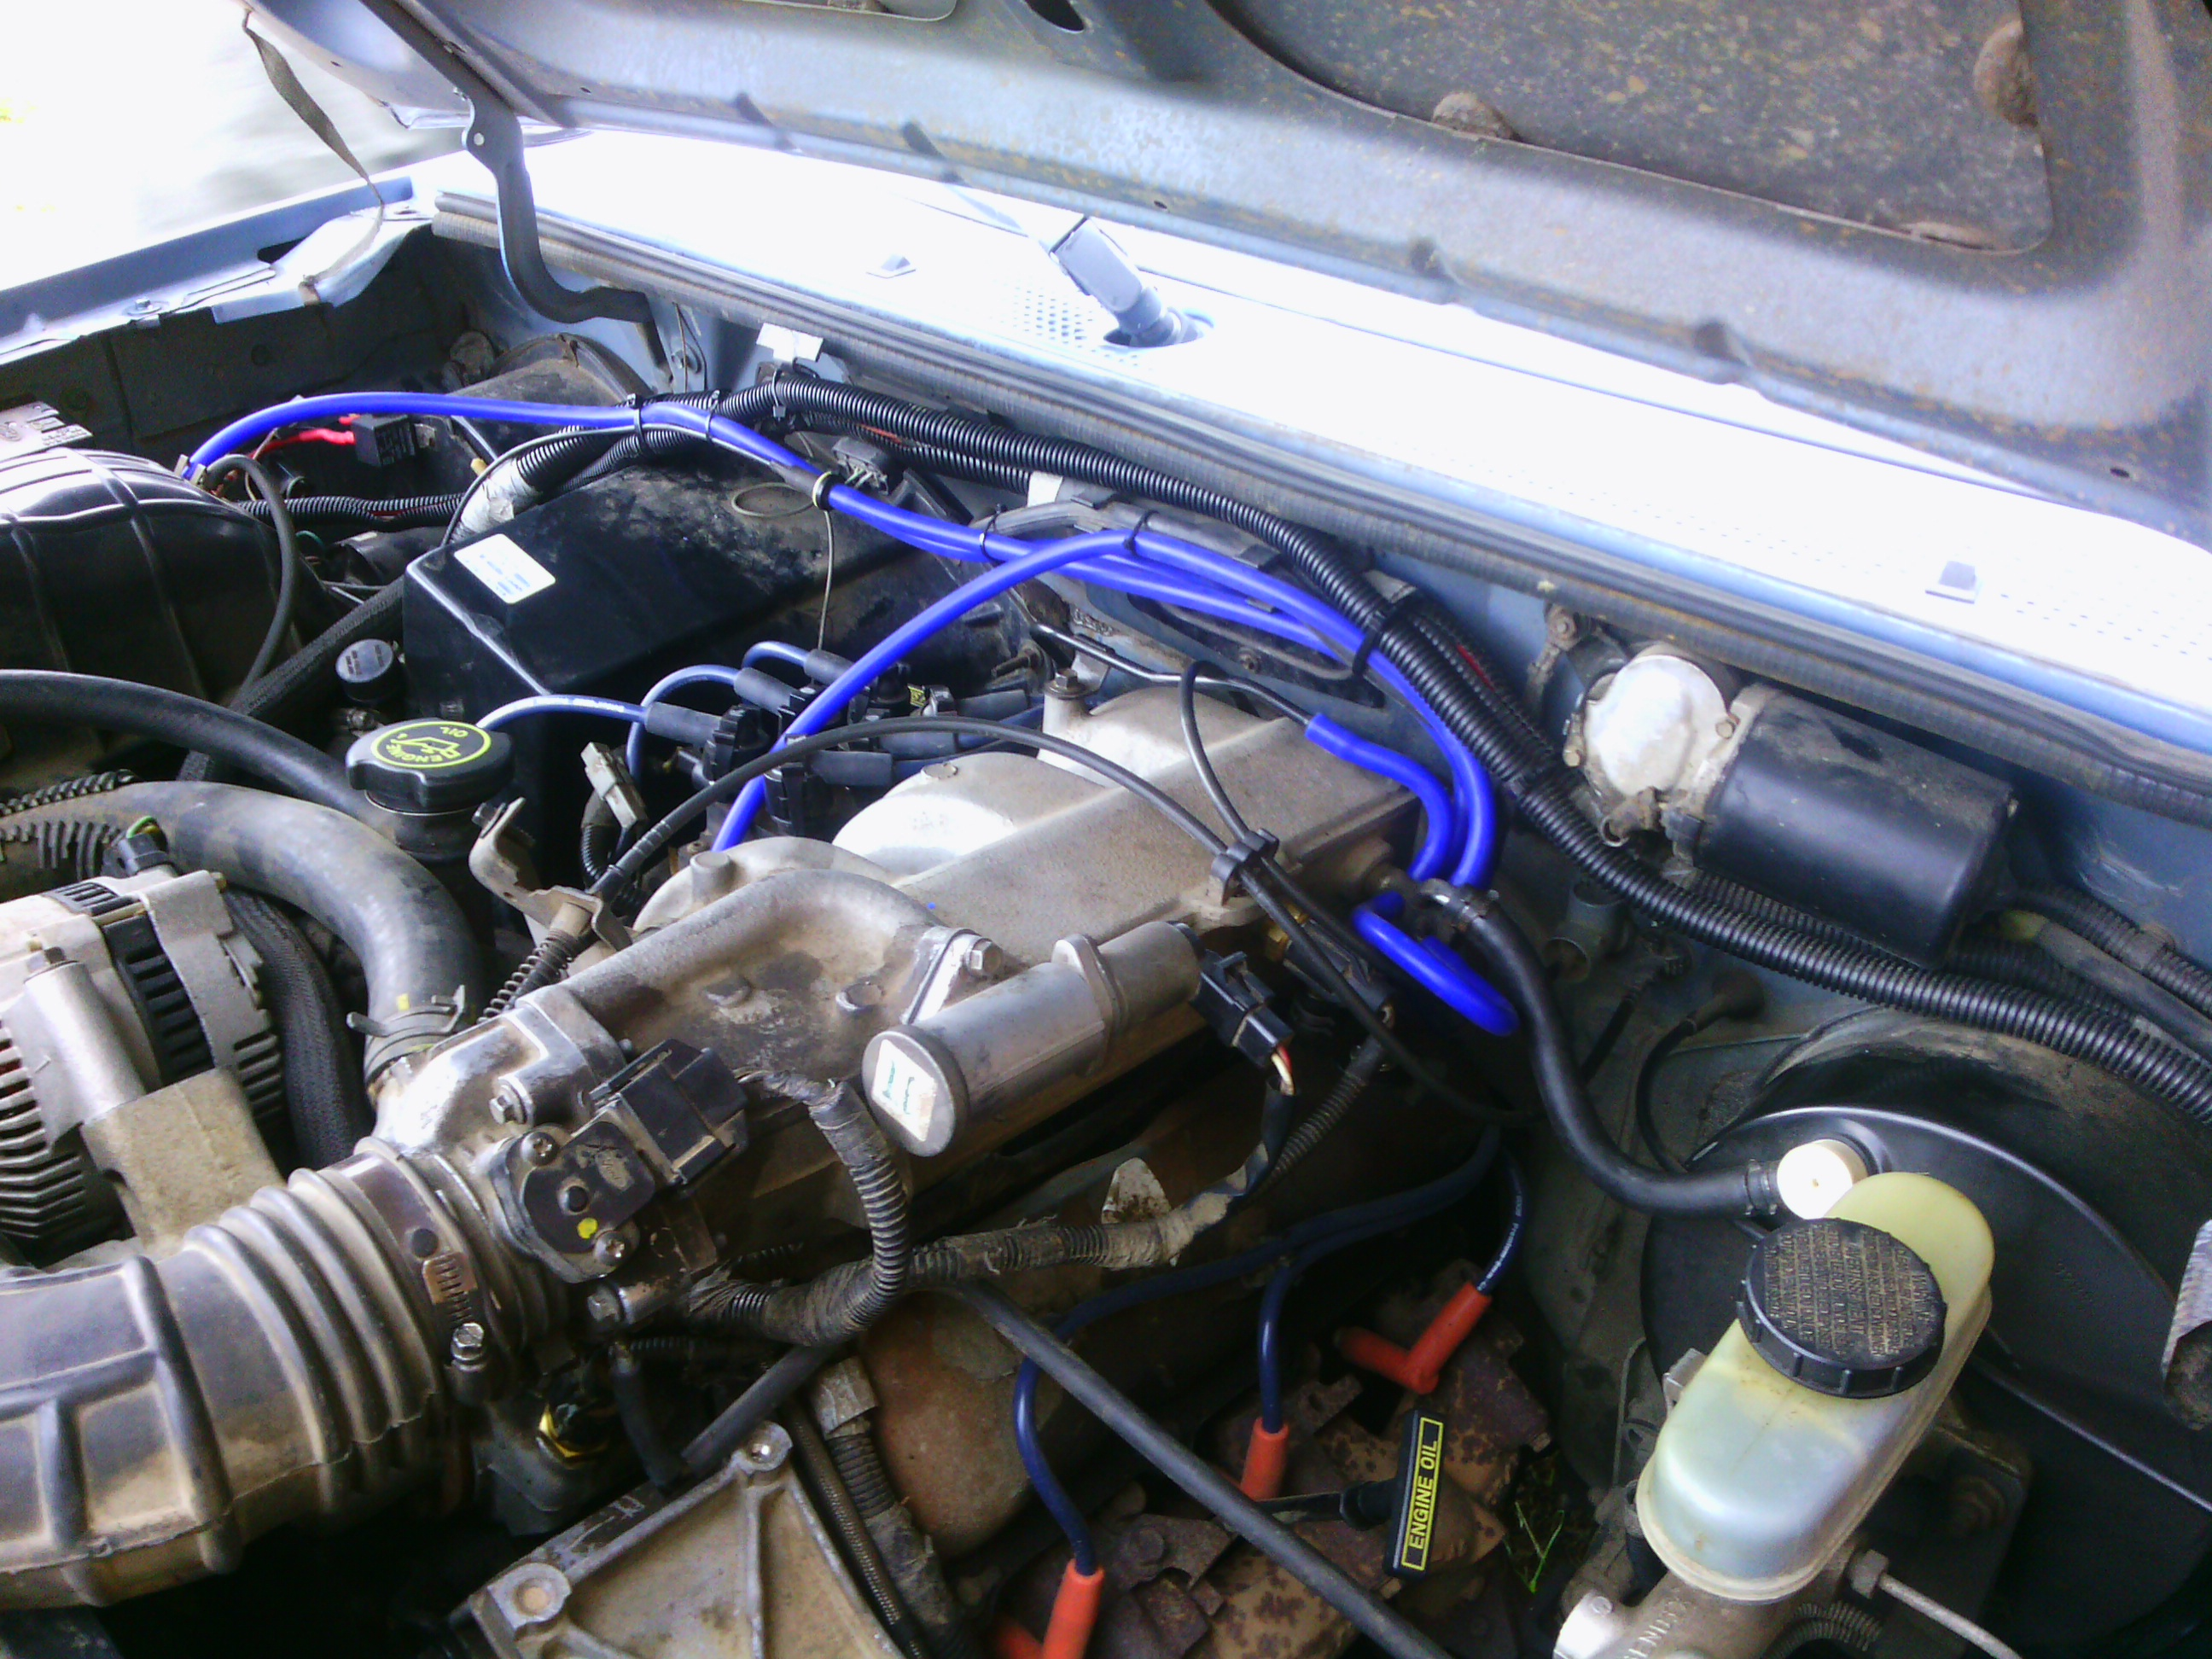 91 Ford Ranger 4 0 Engine Diagram Trusted Wiring Diagrams 1994 Explorer V6 Comprehensive U2022 Rh Alldayviral Com